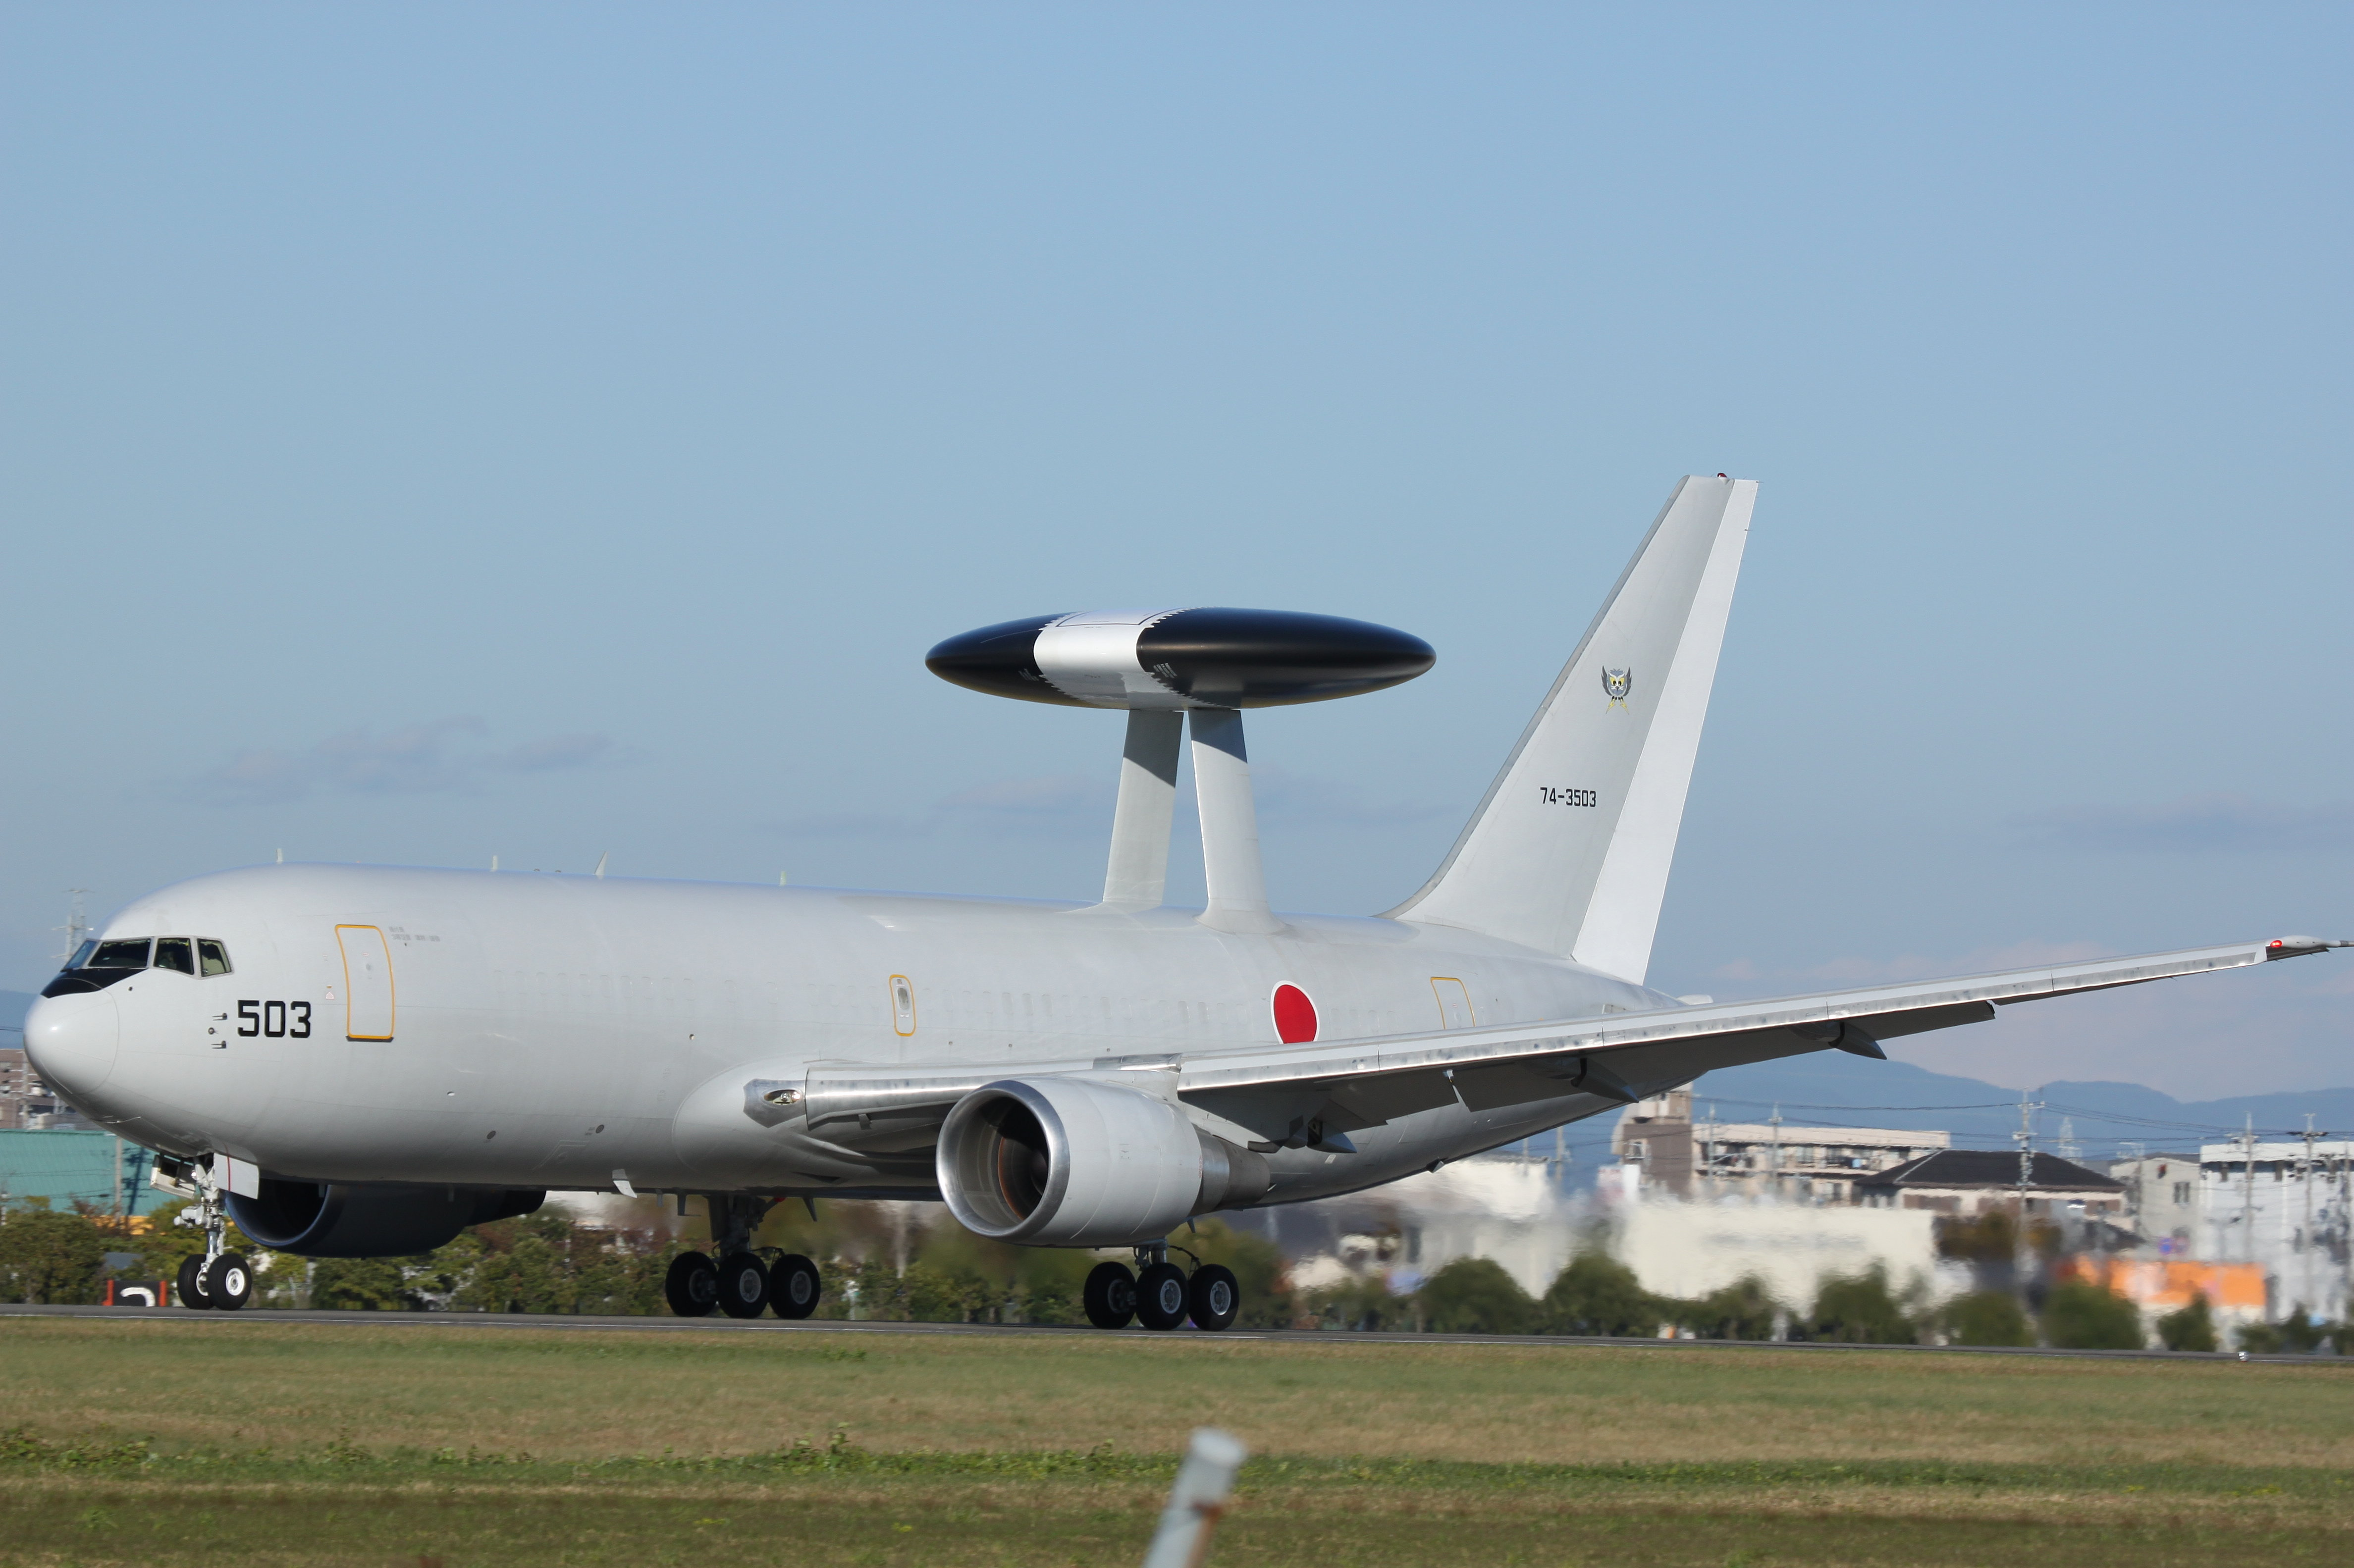 Boeing E-767 AWACS aircraft belonging to the JASDF